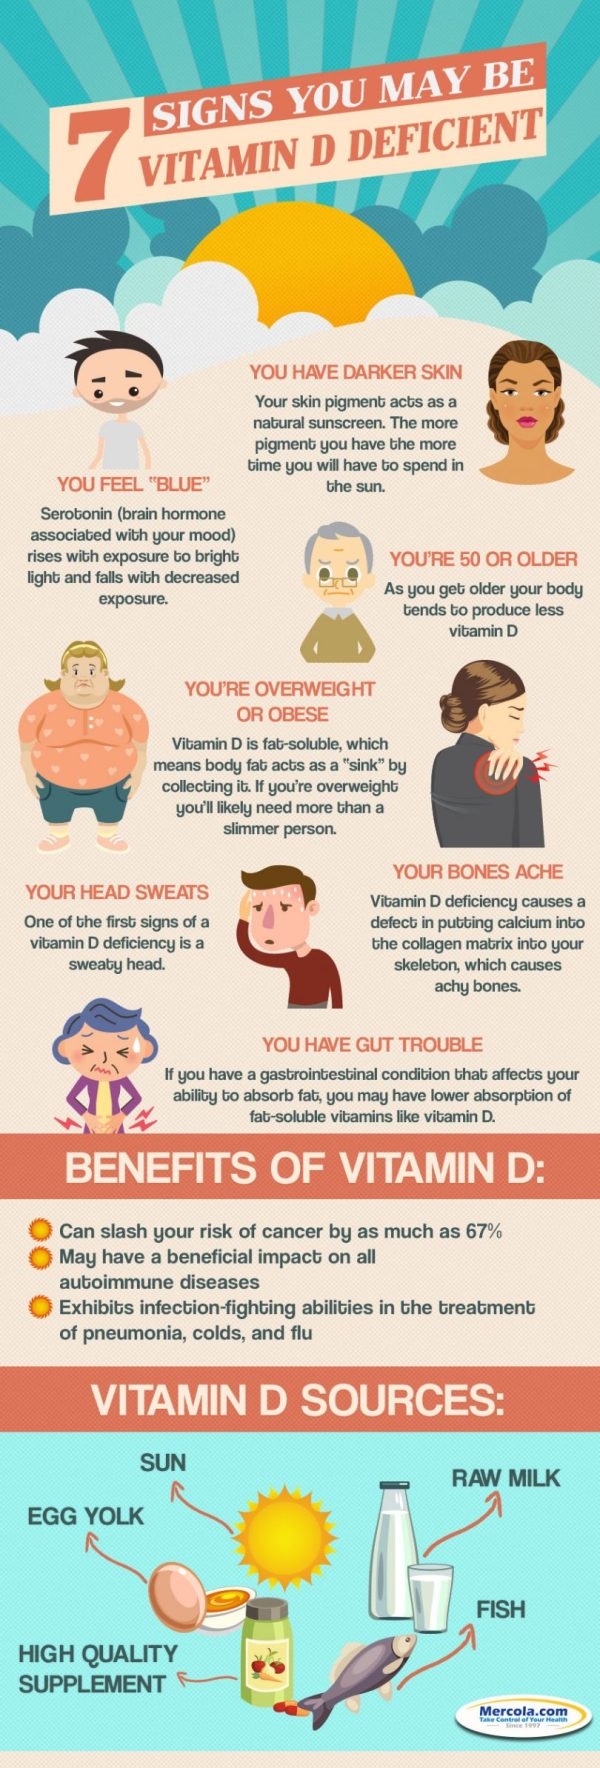 7-signs-you-may-be-vitamin-d-deficient-810x2387